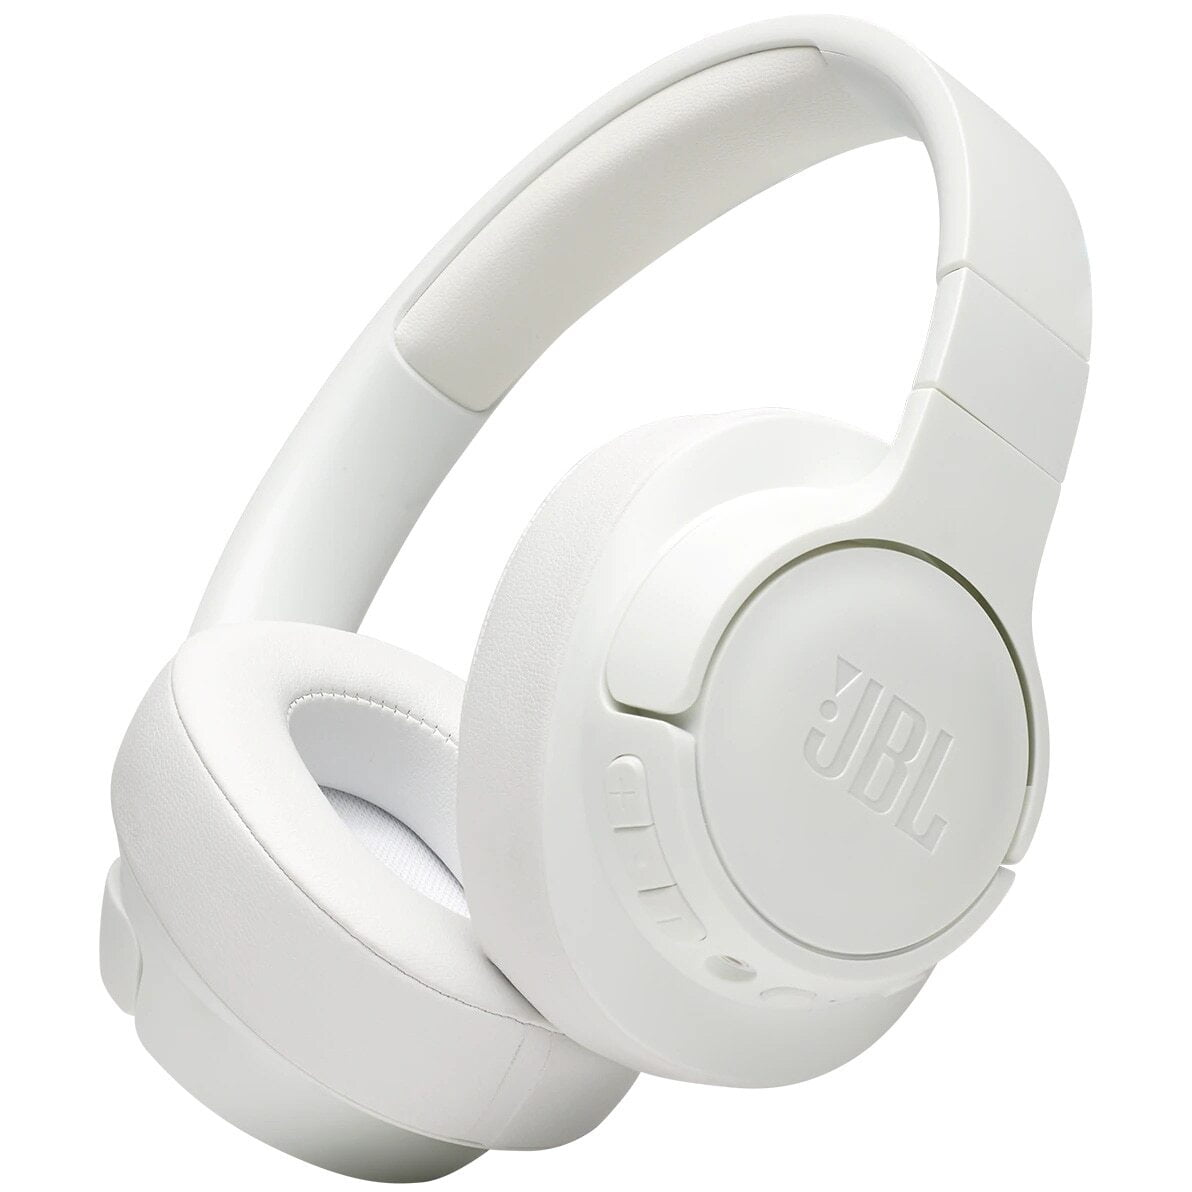 Casti audio Over-Ear JBL Tune 750, Wireless, Bluetooth, Noise cancelling, 15h, White